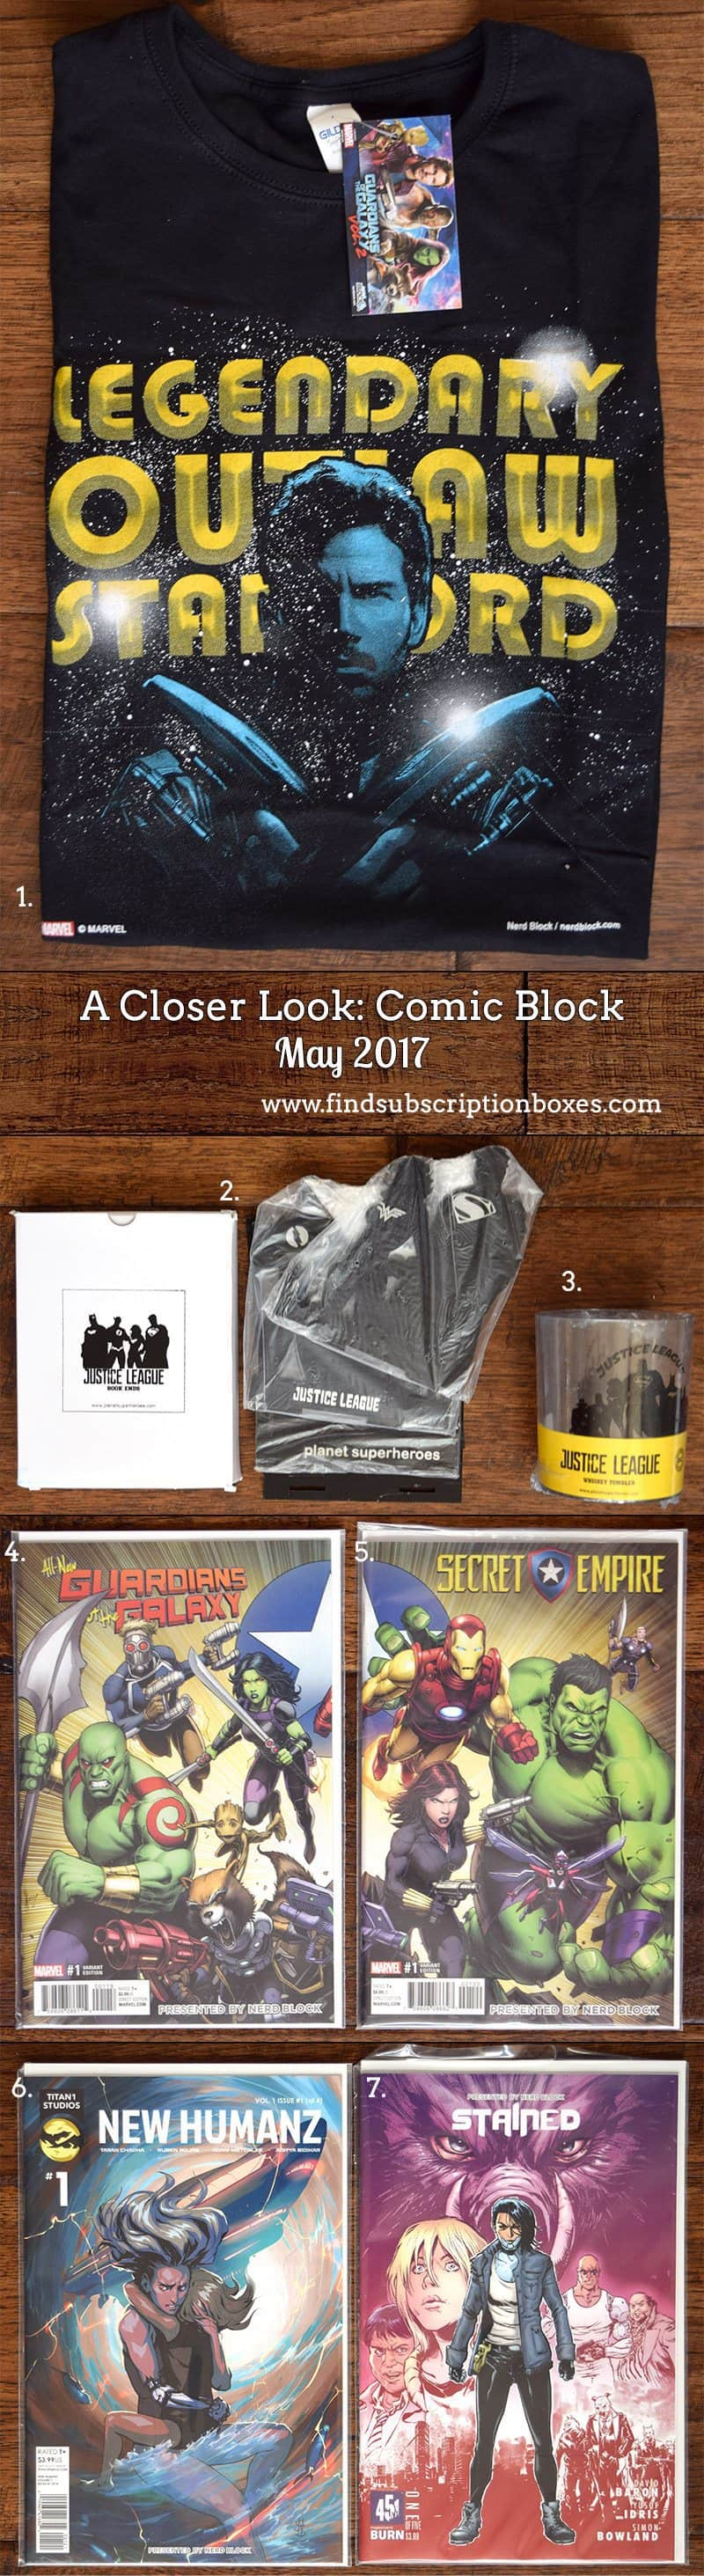 May 2017 Comic Block Review - Inside the Box